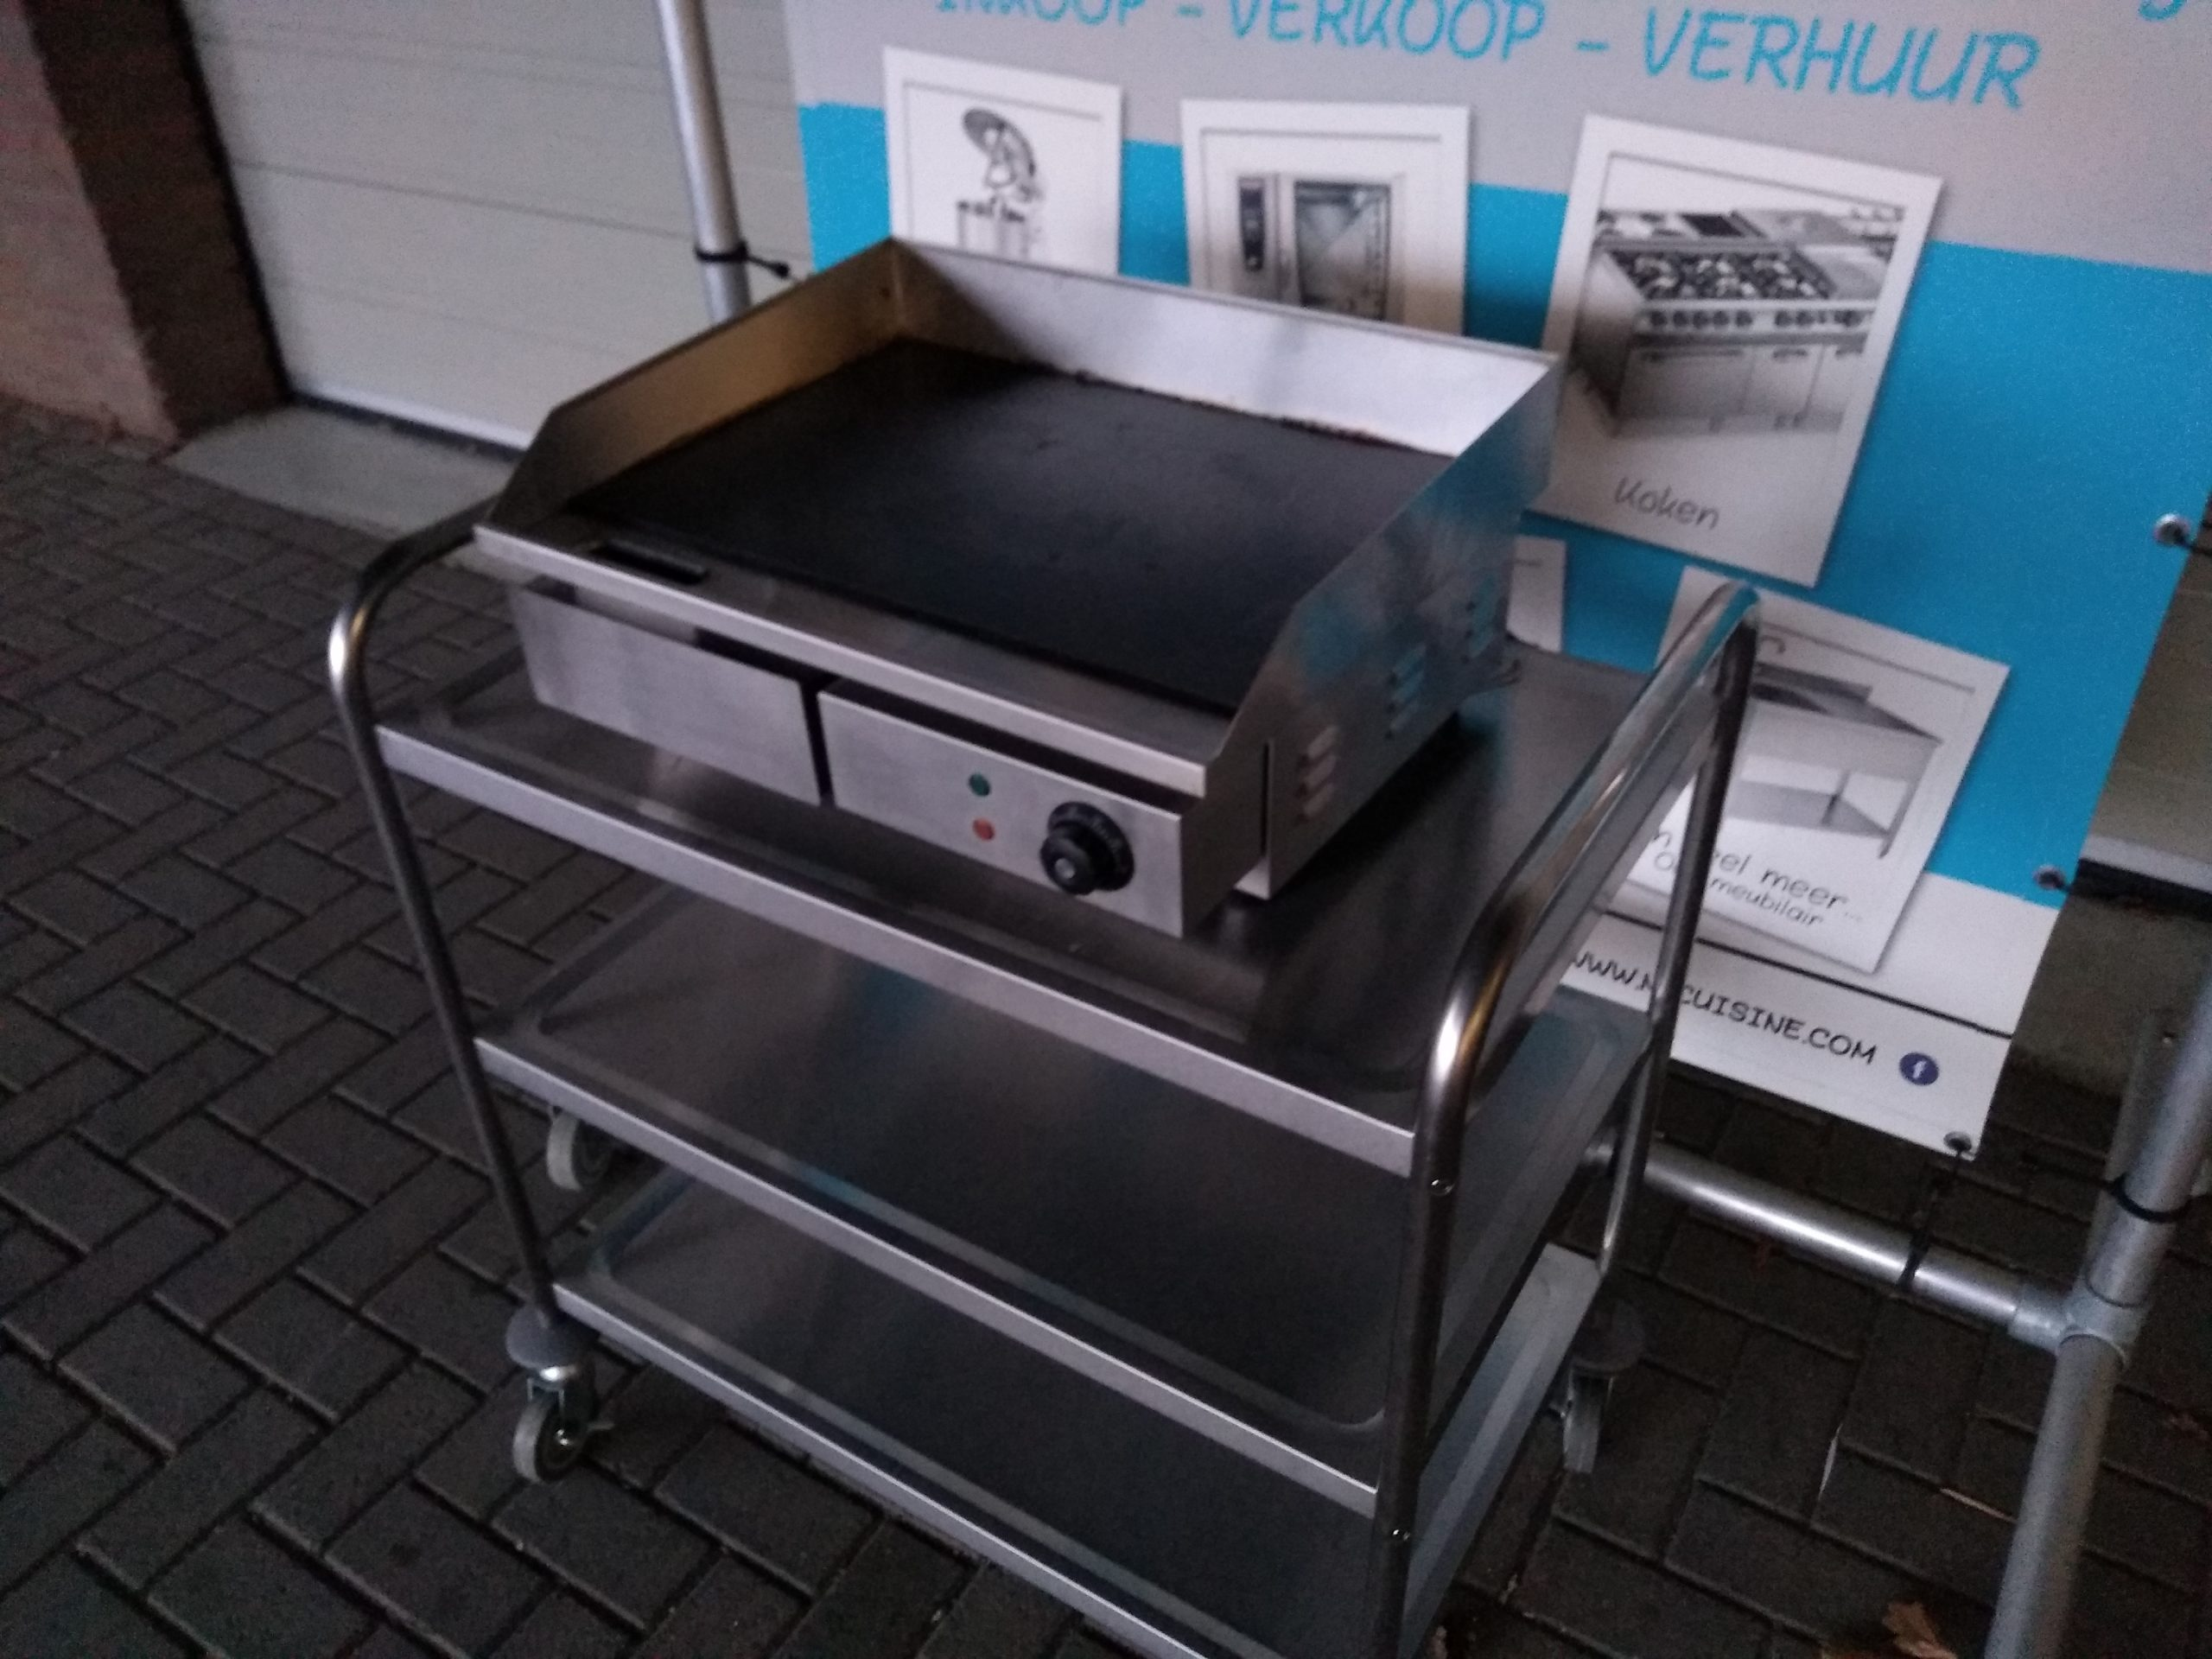 Electric griddle bakplaat Image